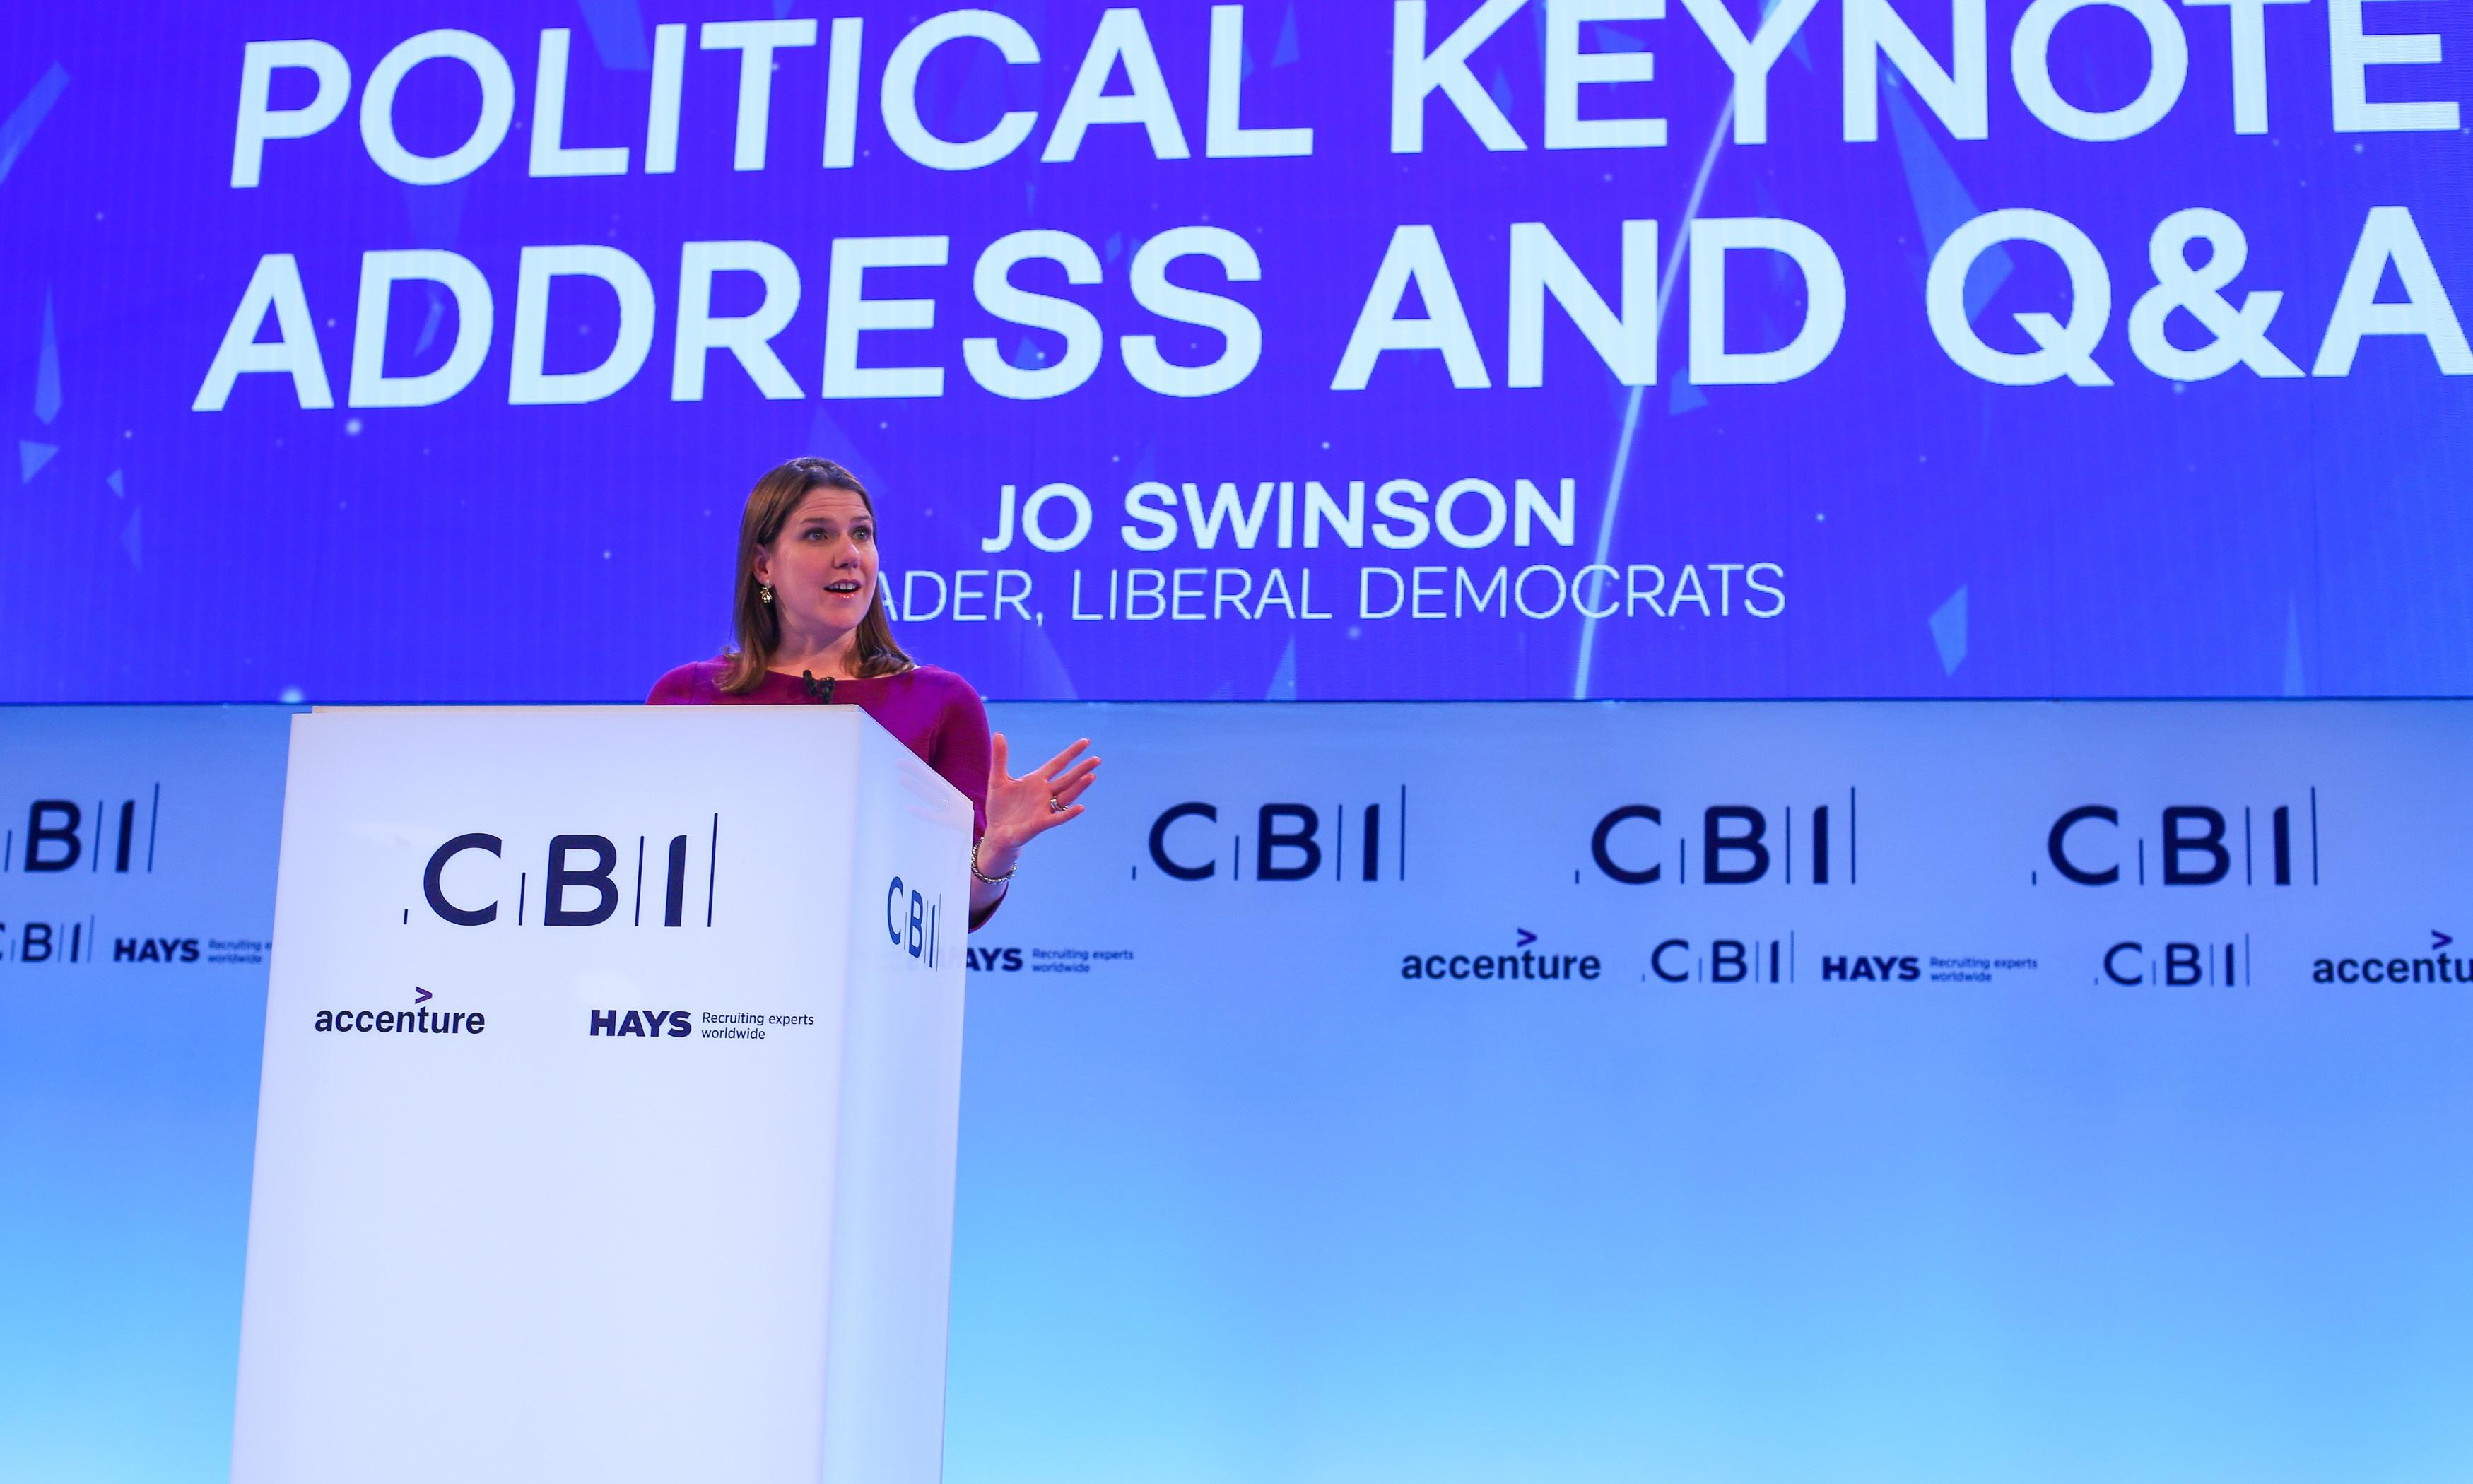 Jo Swinson gets best reception at CBI for Lib Dems' pro-EU stance